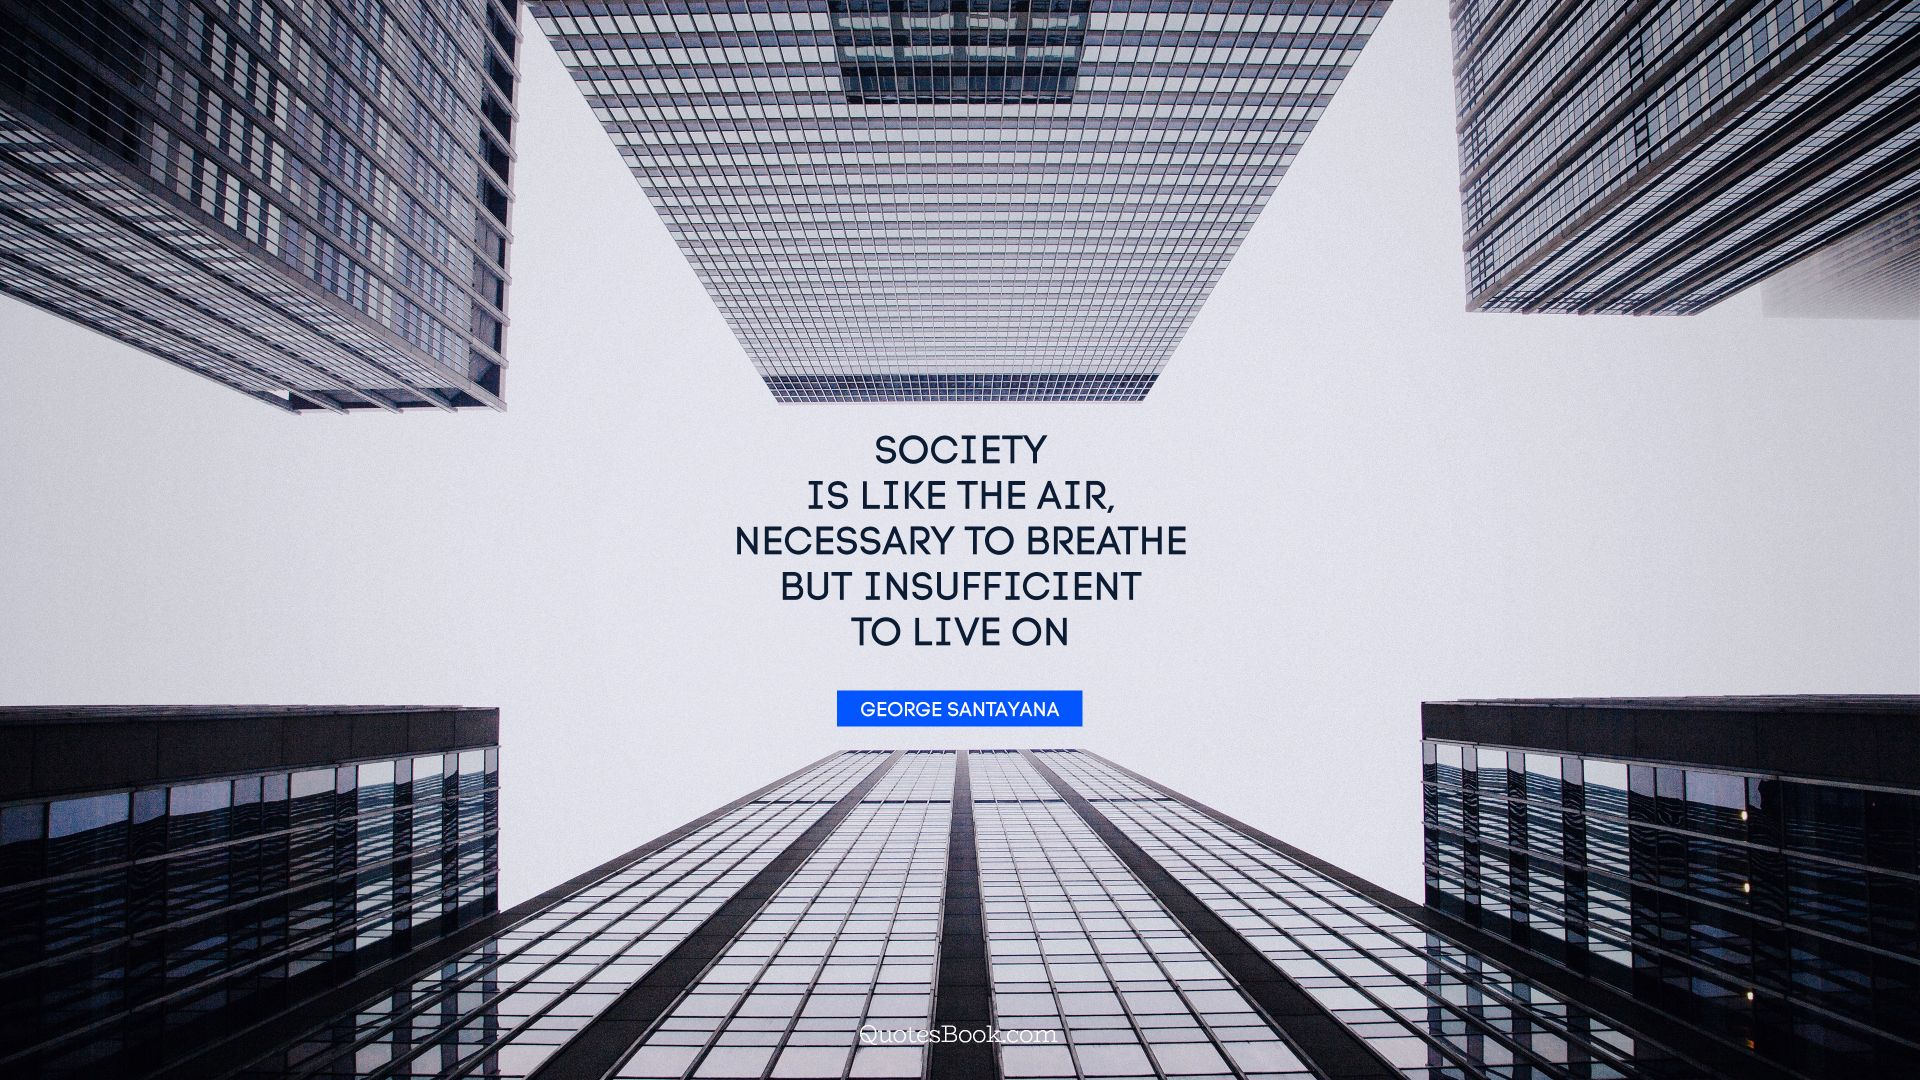 Society is like the air, necessary to breathe but insufficient to live on. - Quote by George Santayana